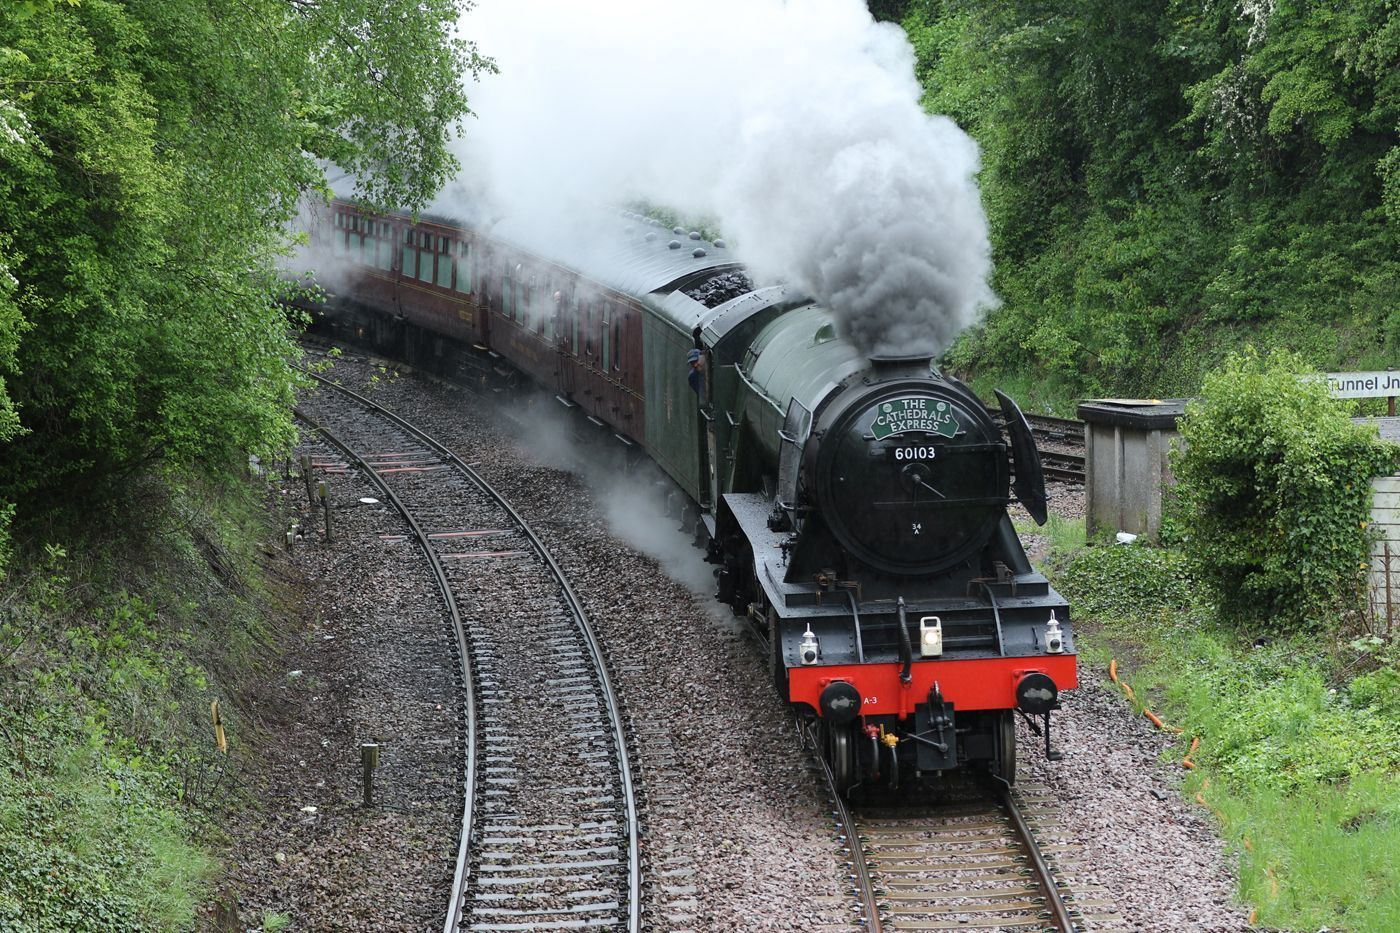 The Flying Scotsman powers through the Wiltshire countryside.